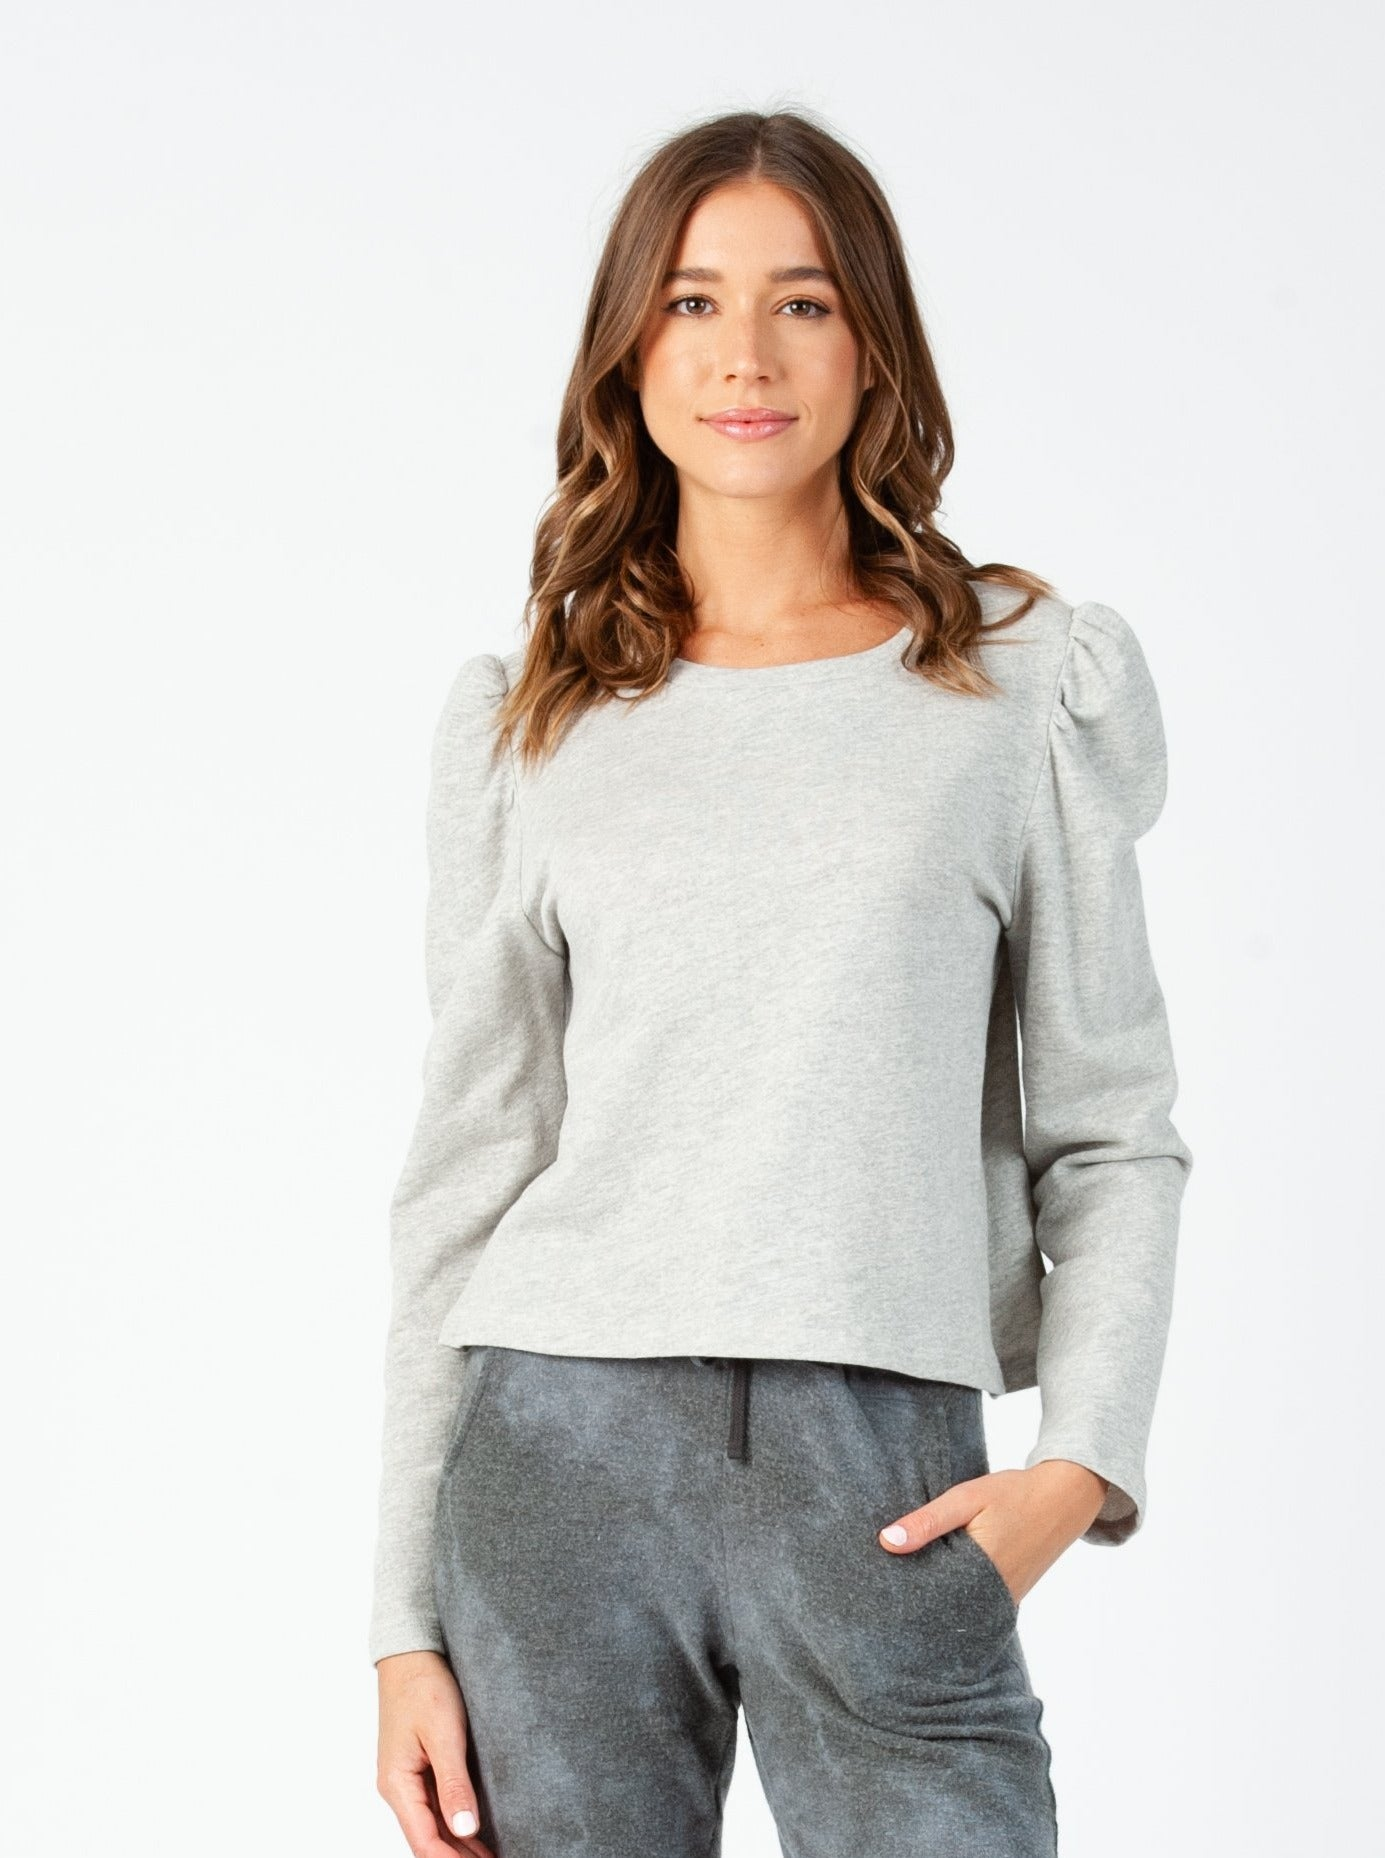 KATE PUFF SLEEVE SWEATSHIRT| HEATHER GRAY